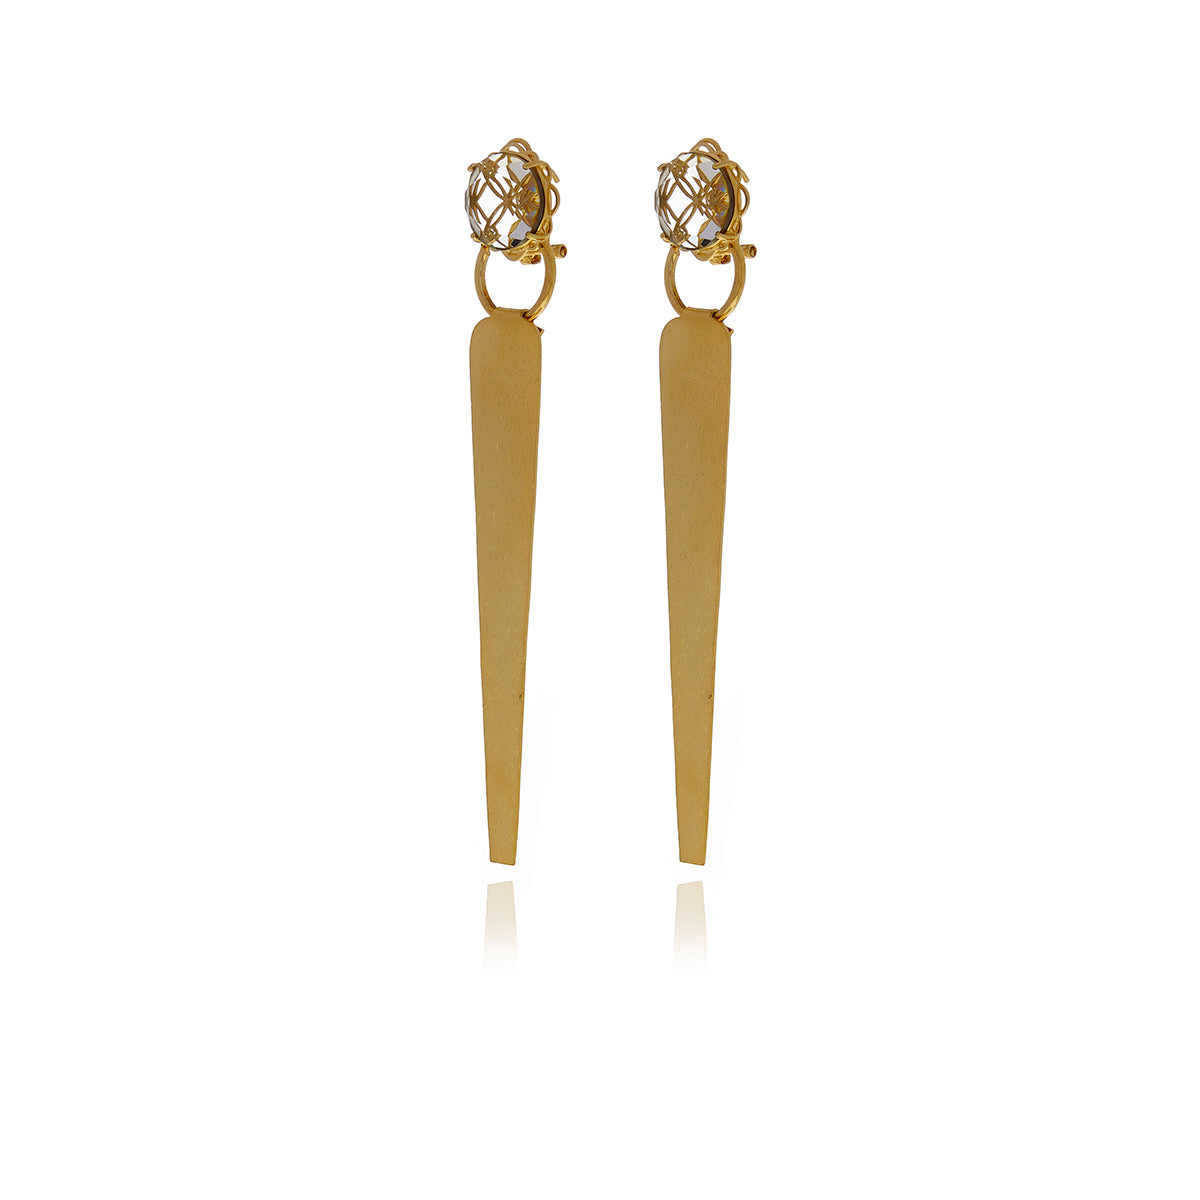 Releve Runway Gold Crystal Triangle Earrings - Georgina Jewelry